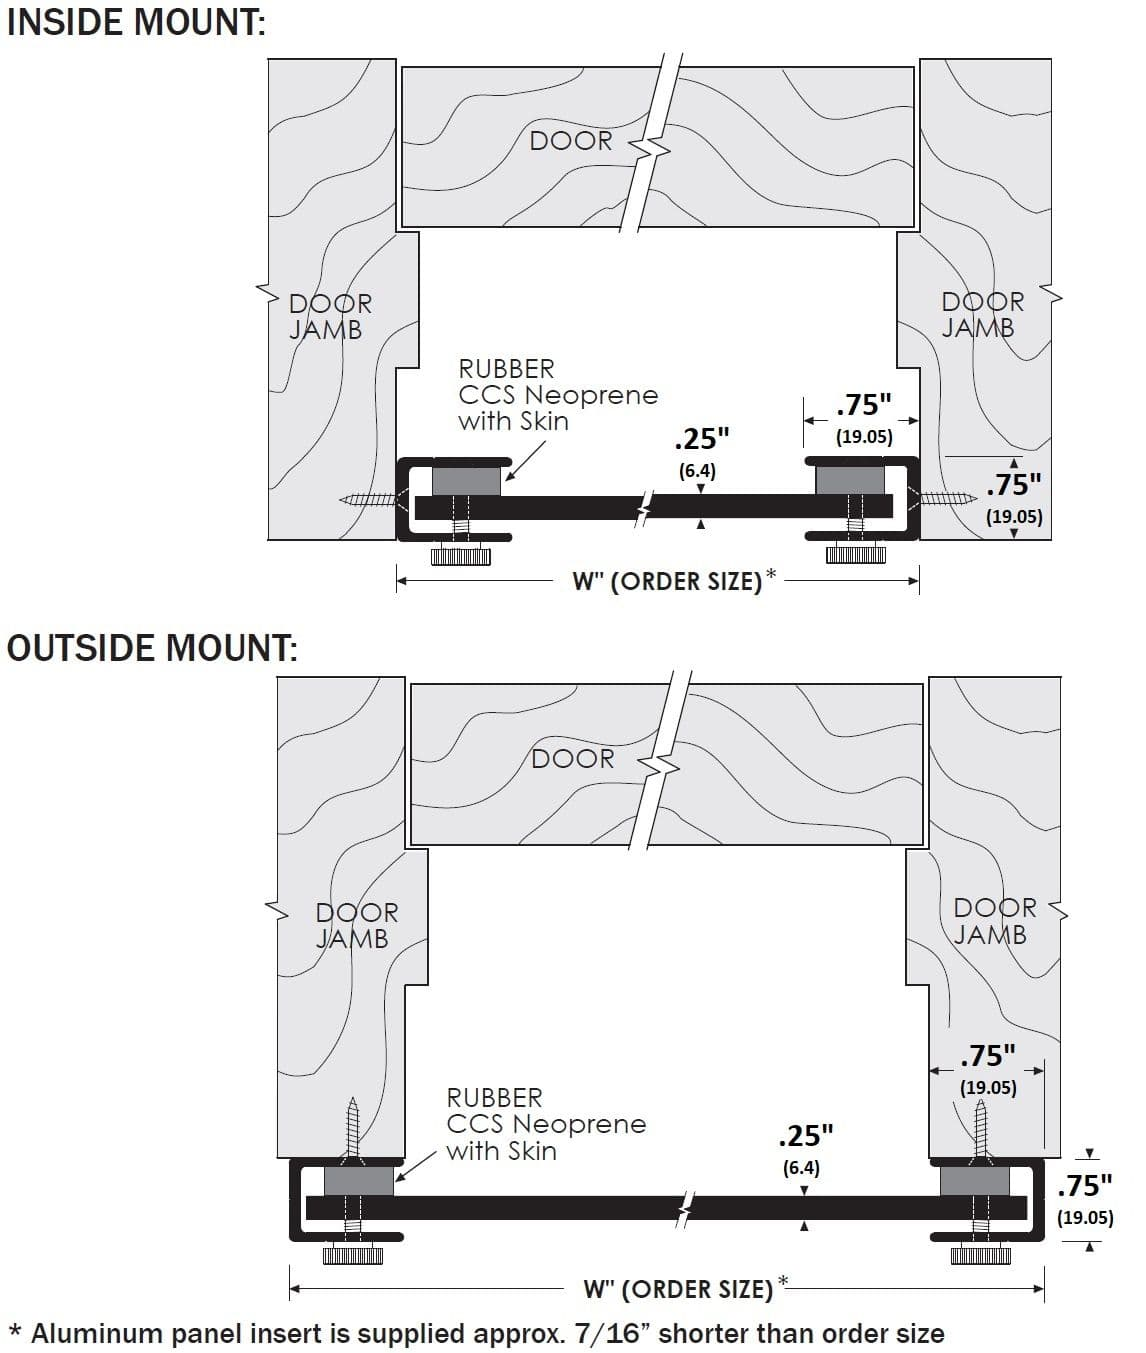 Mounting Options of TH72070 Flood Barrier Shield